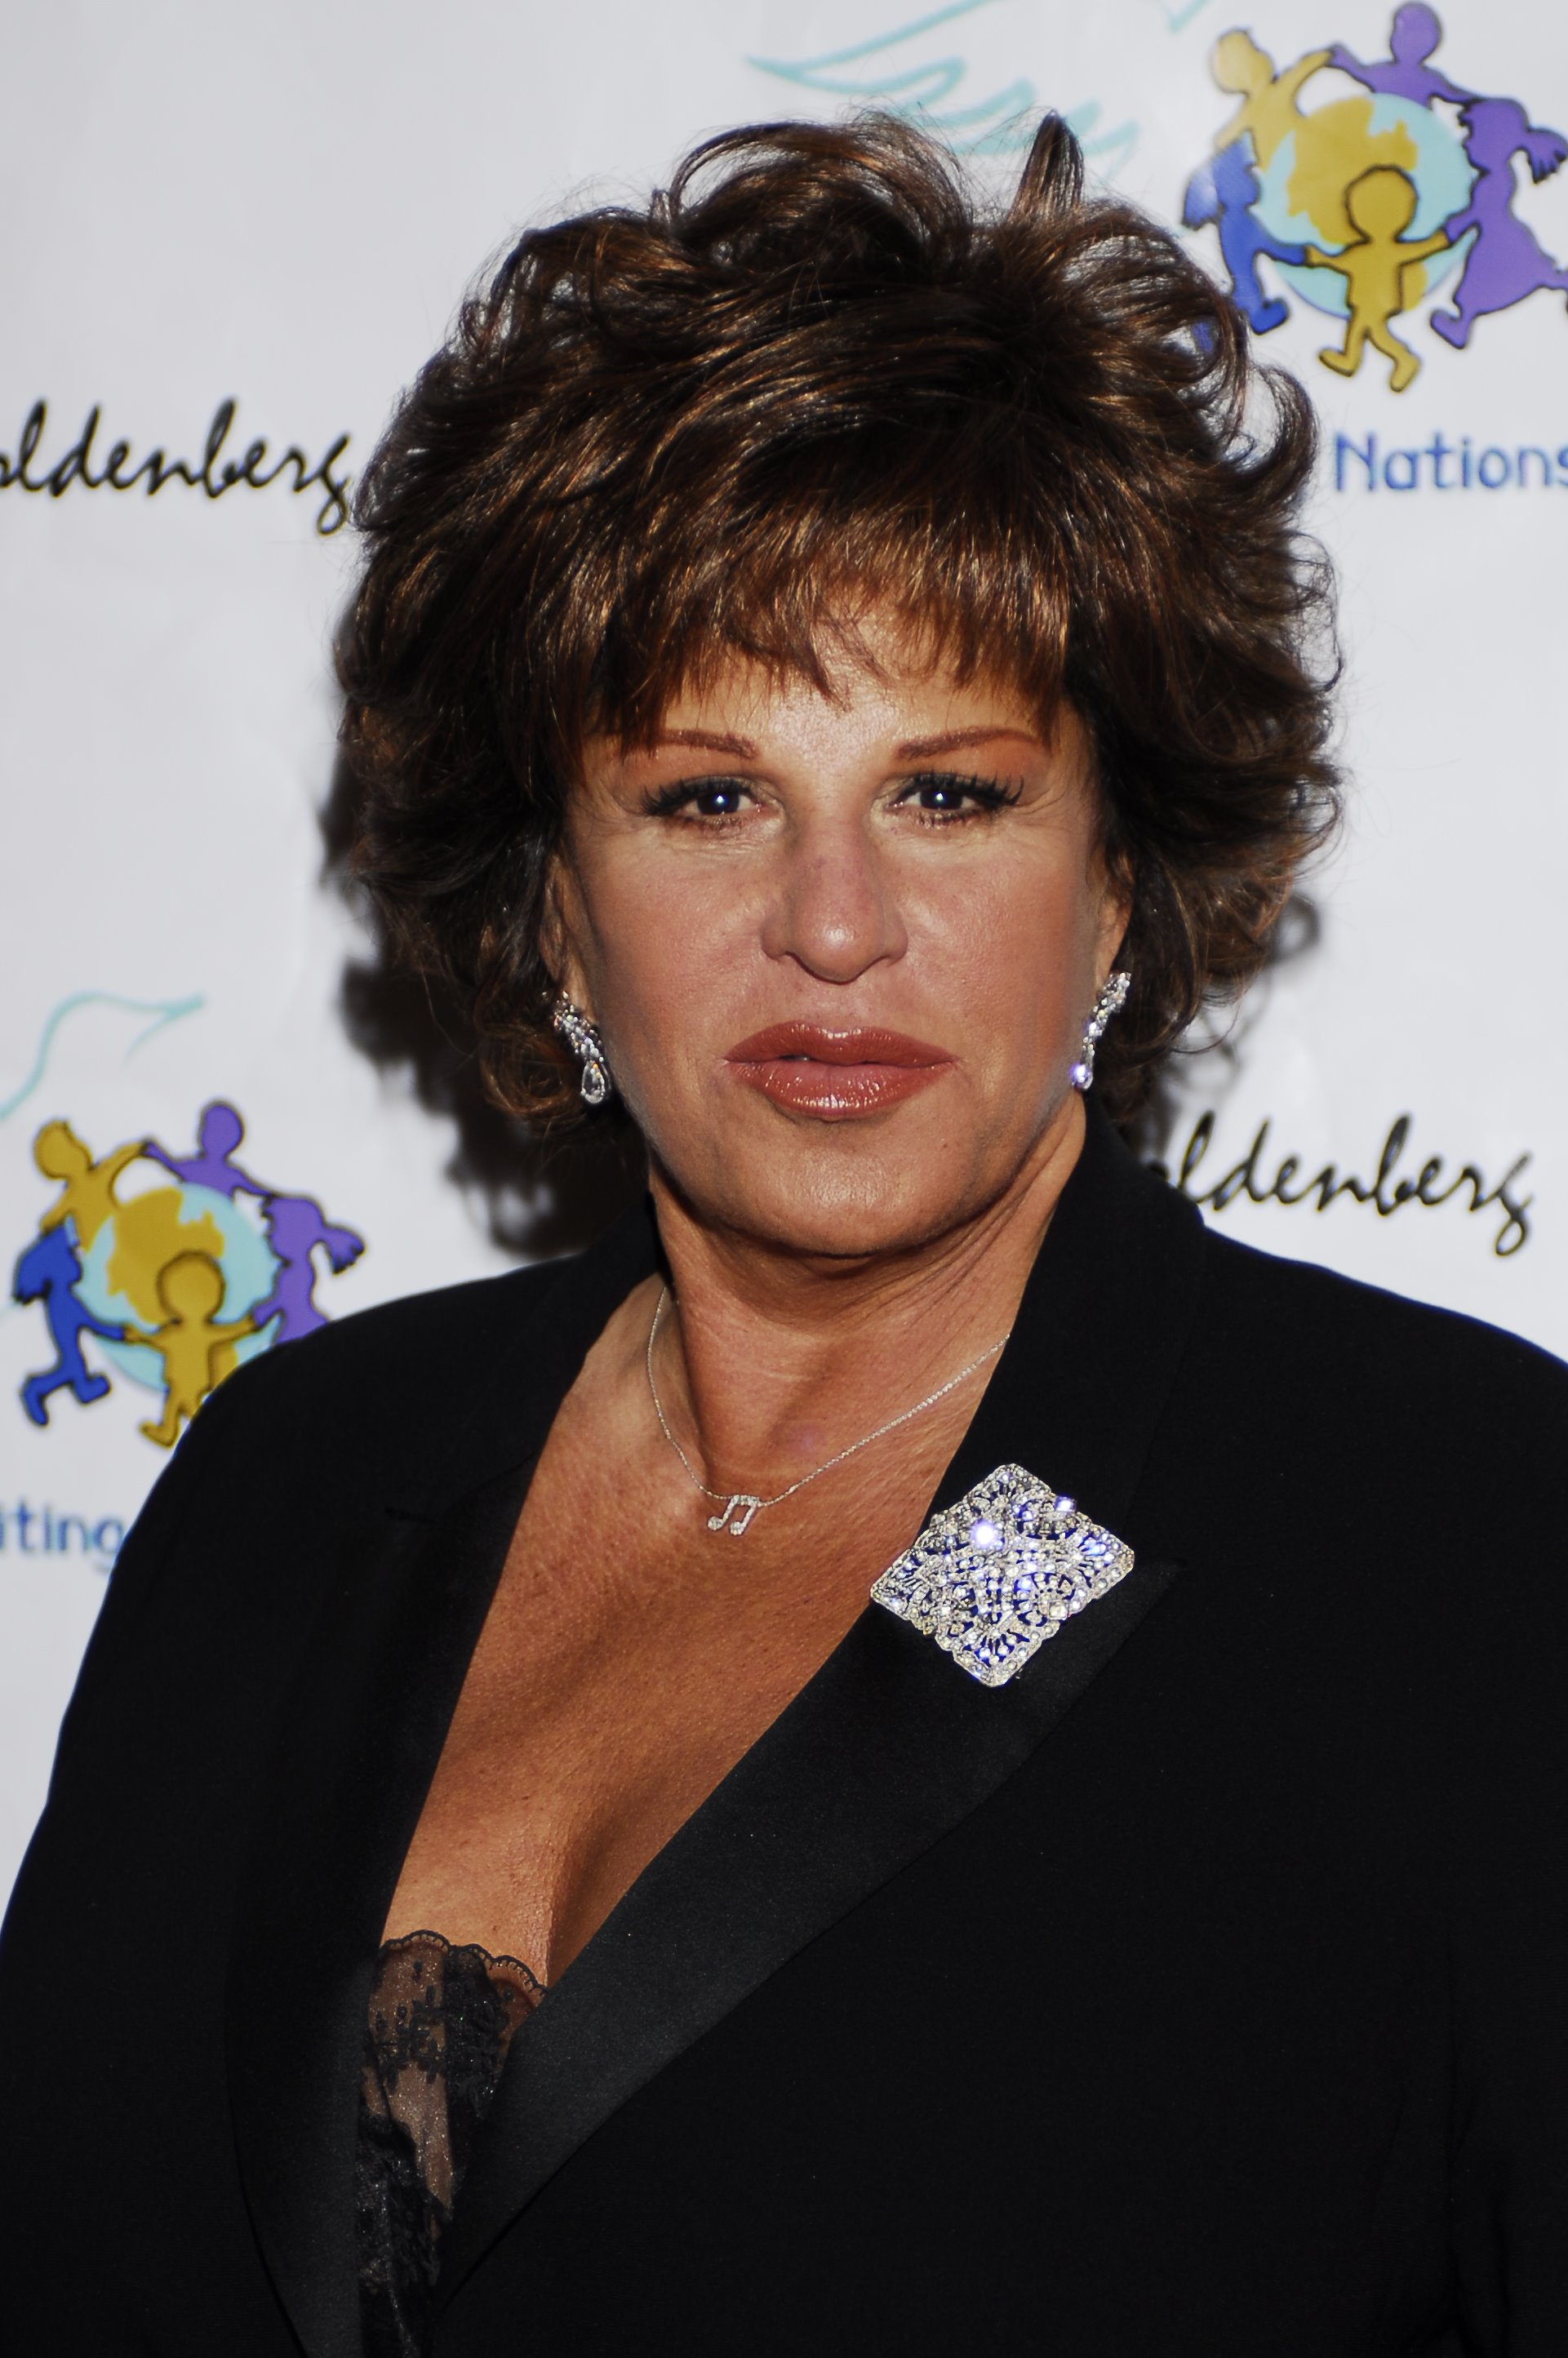 Kazan at the 79th Annual Academy Awards Children Uniting Nations/Billboard afterparty in February 2007